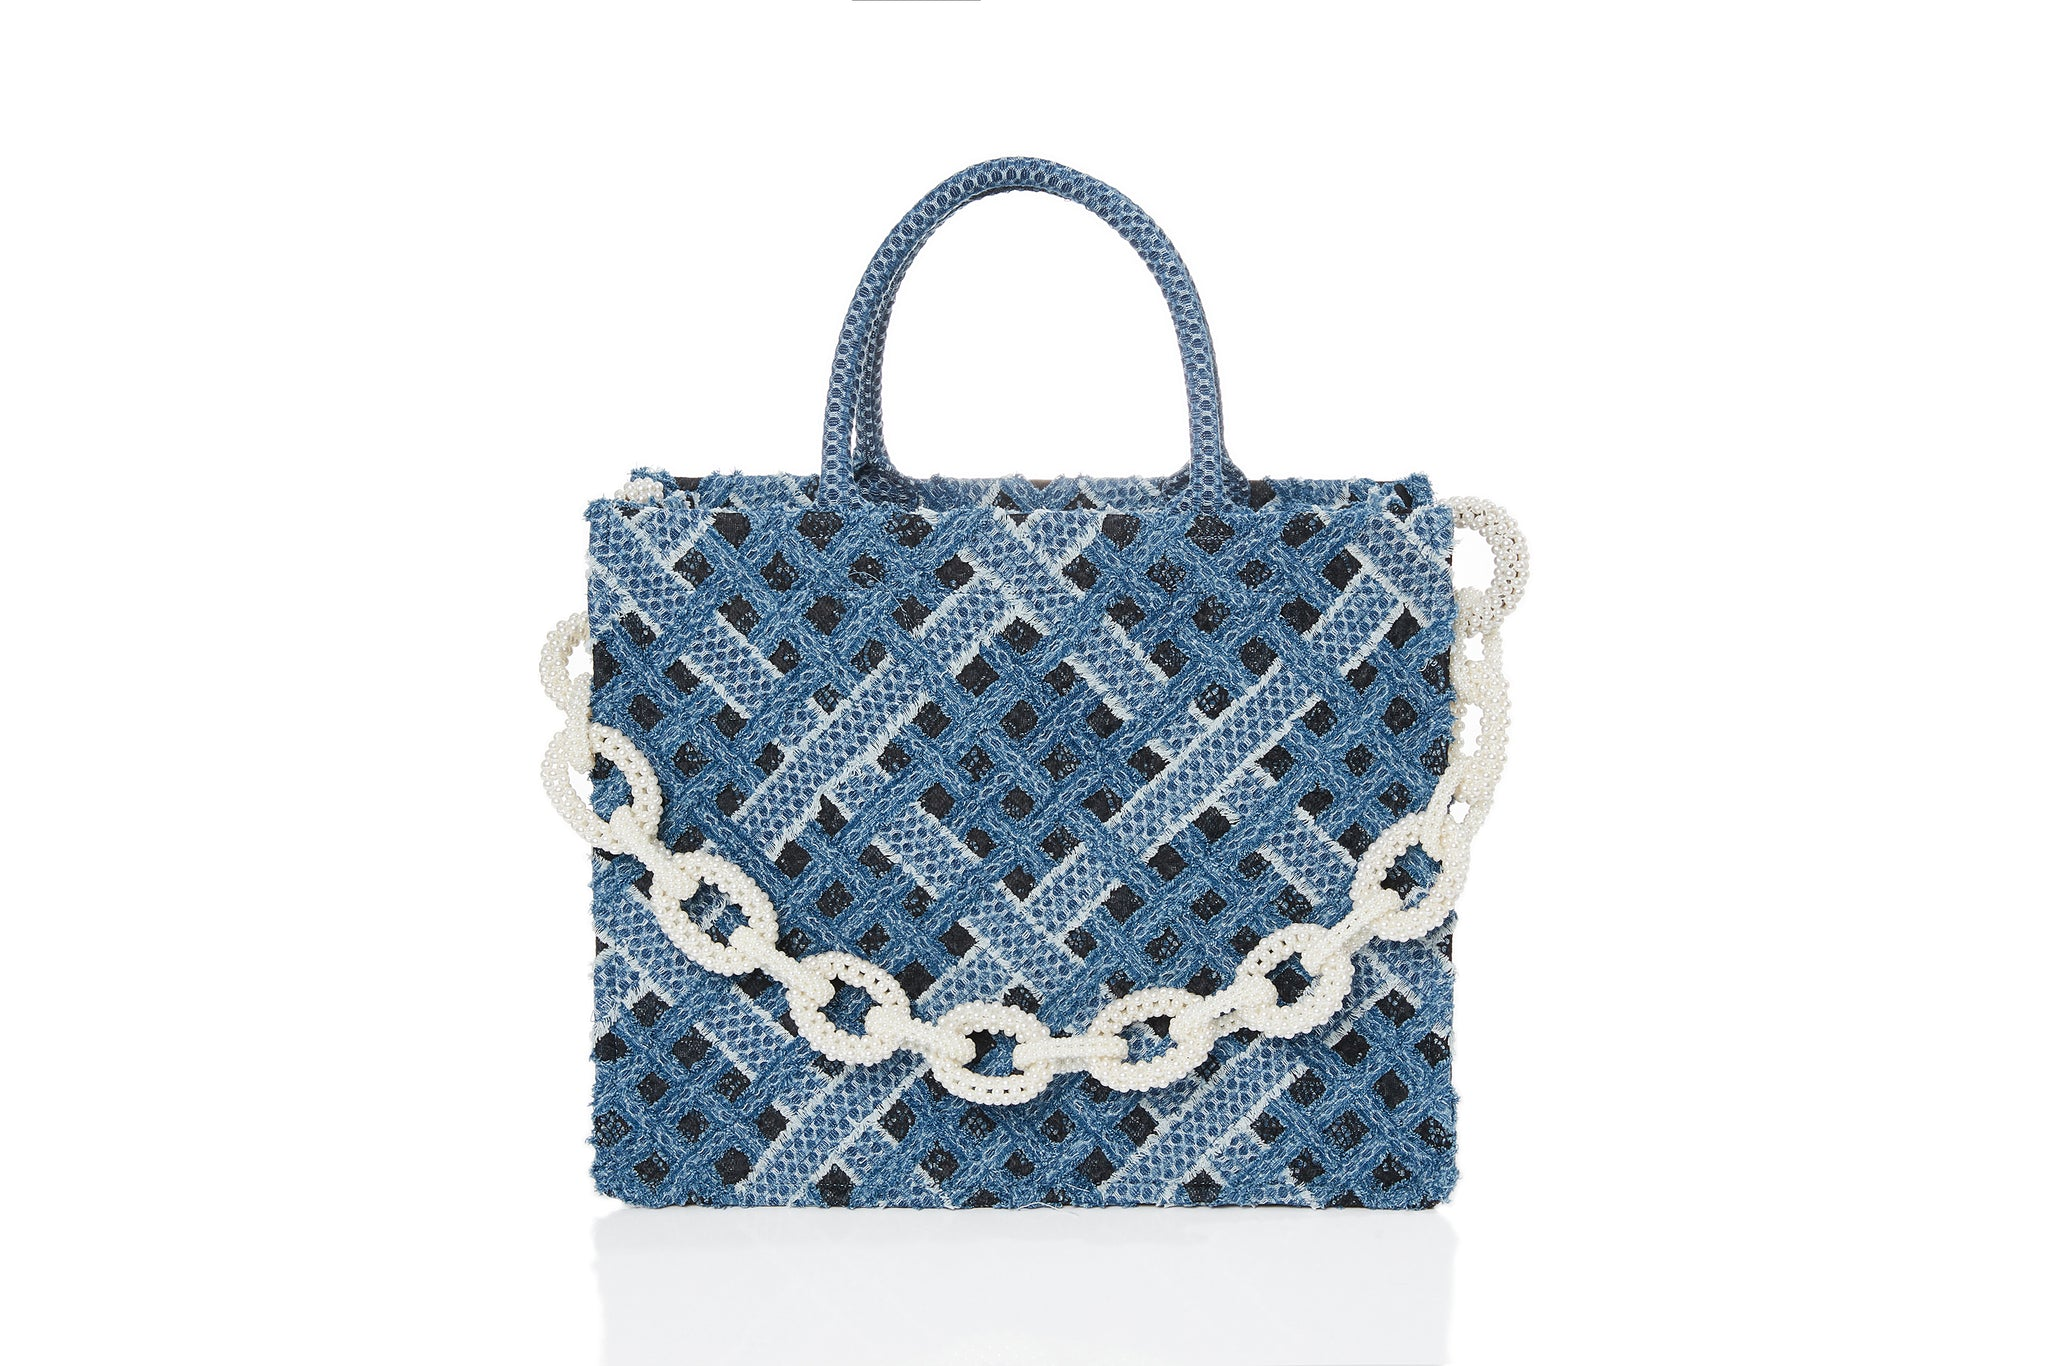 Handwoven Denim on Lace Bag, Large Tote, Pearl Chain, Dark Blue